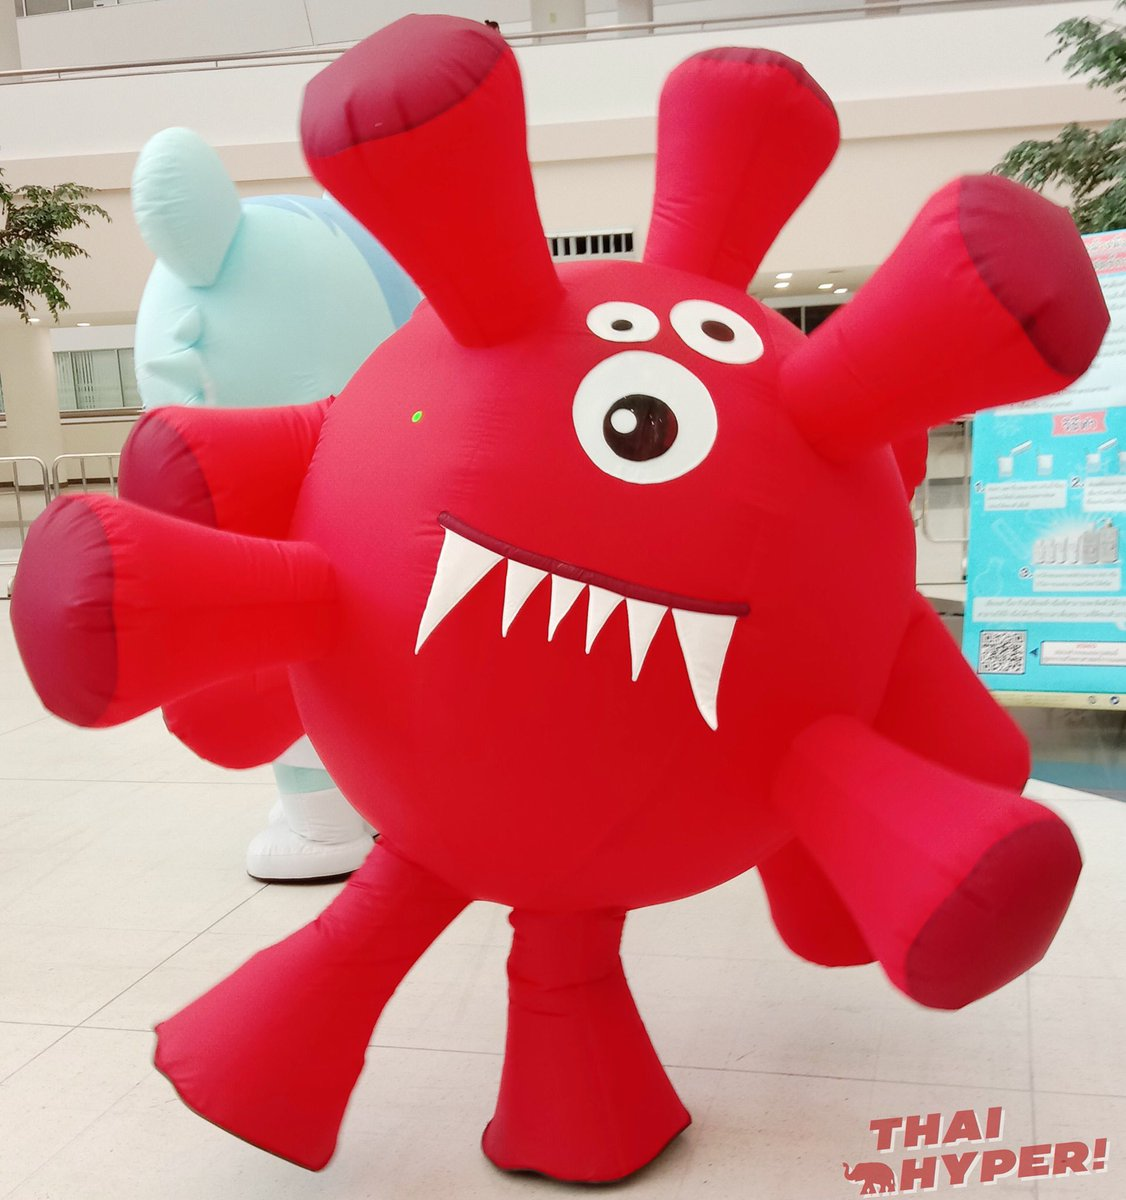 Covid-kun is a new coronavirus mascot from Thailand who teaches kids to wash their hands and social distance.